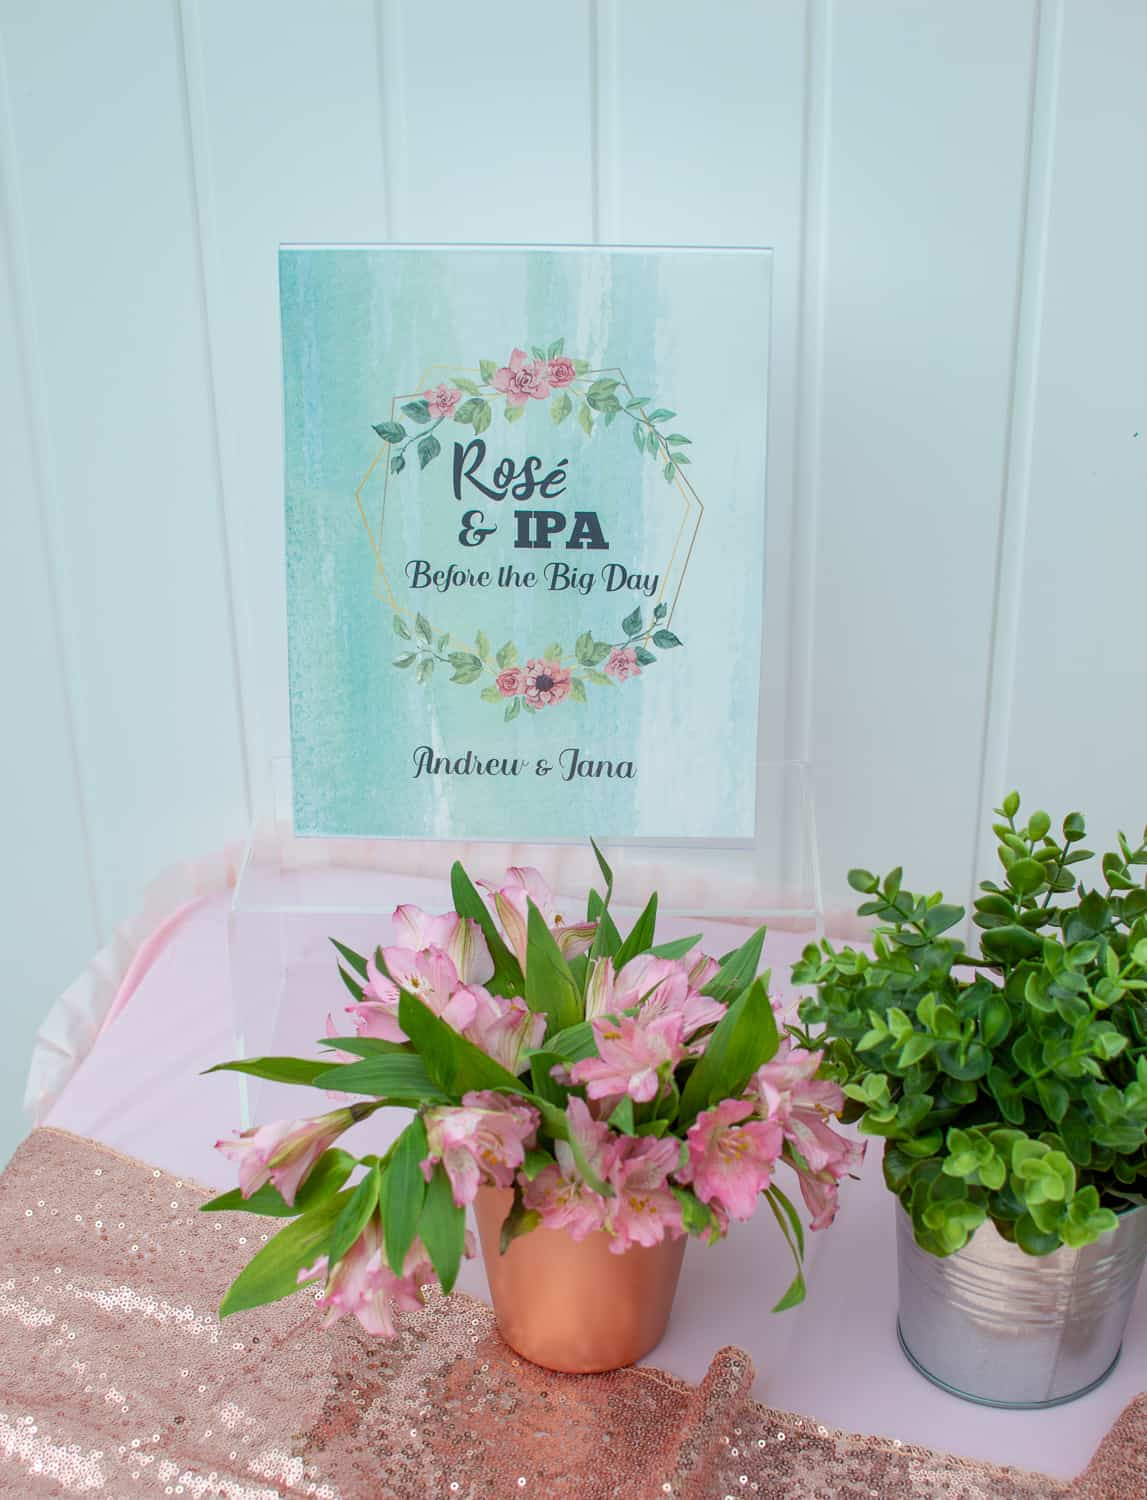 Rosé and IPA party sign along with flowers and greenery